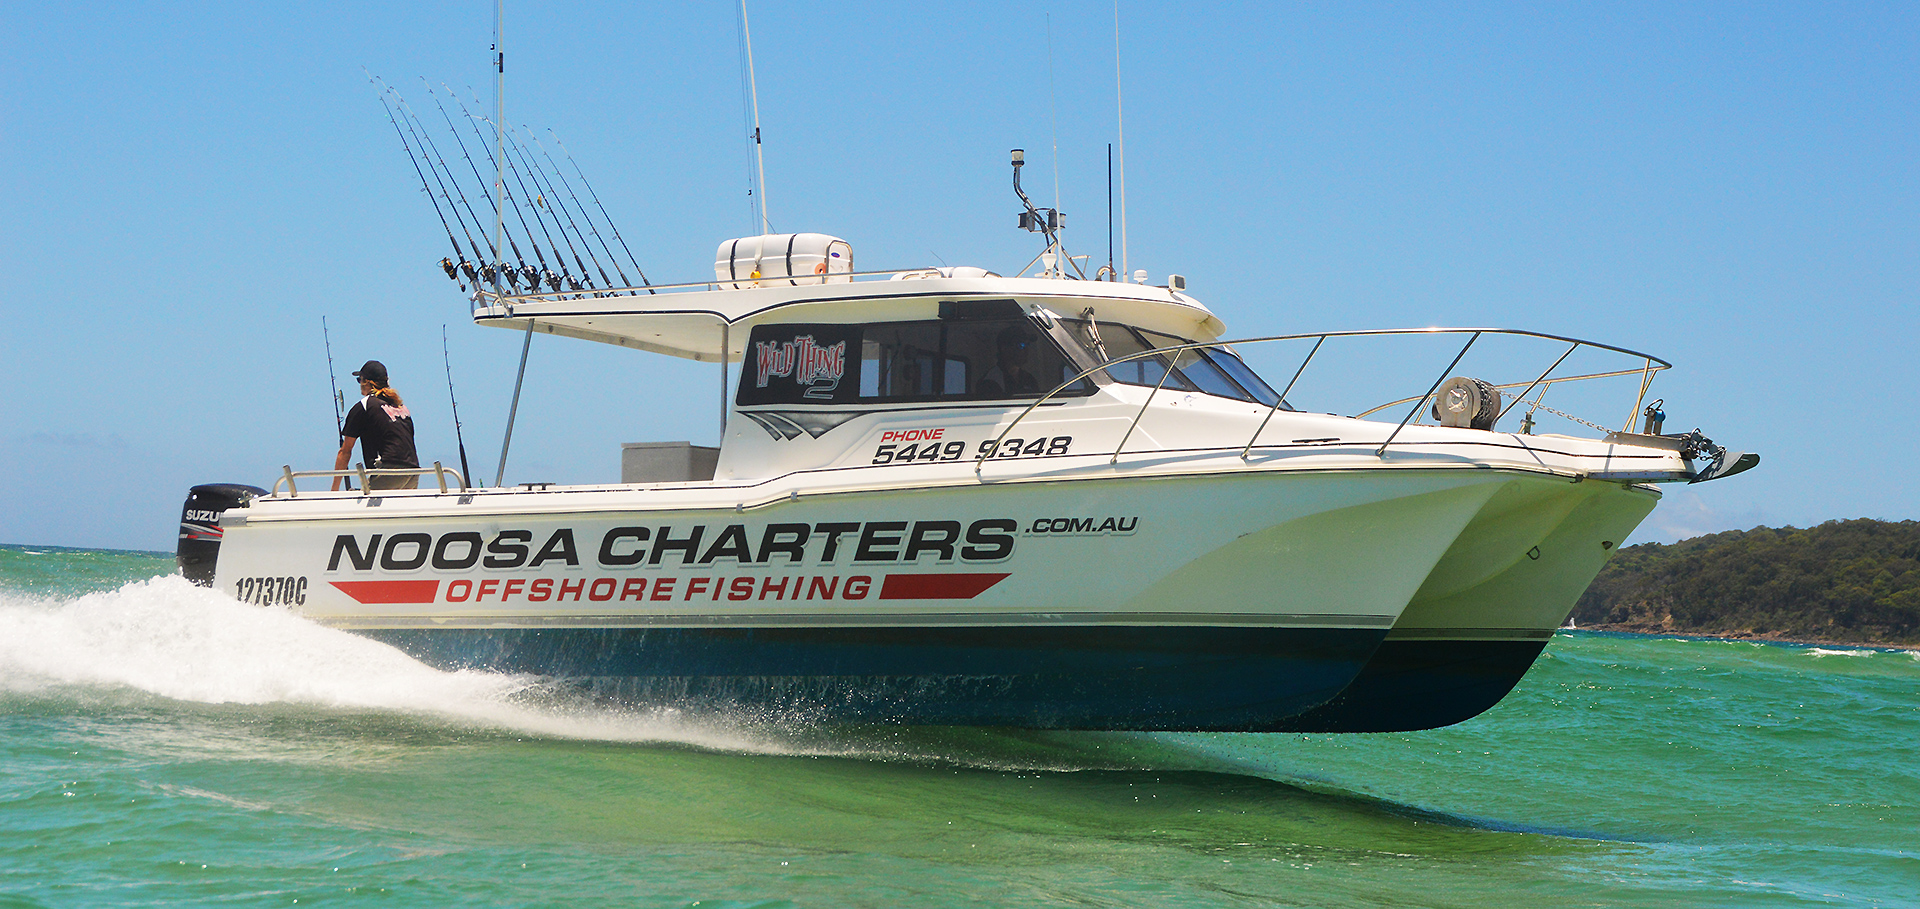 Contact noosa charters offshore fishing in noosa heads for Offshore fishing charters